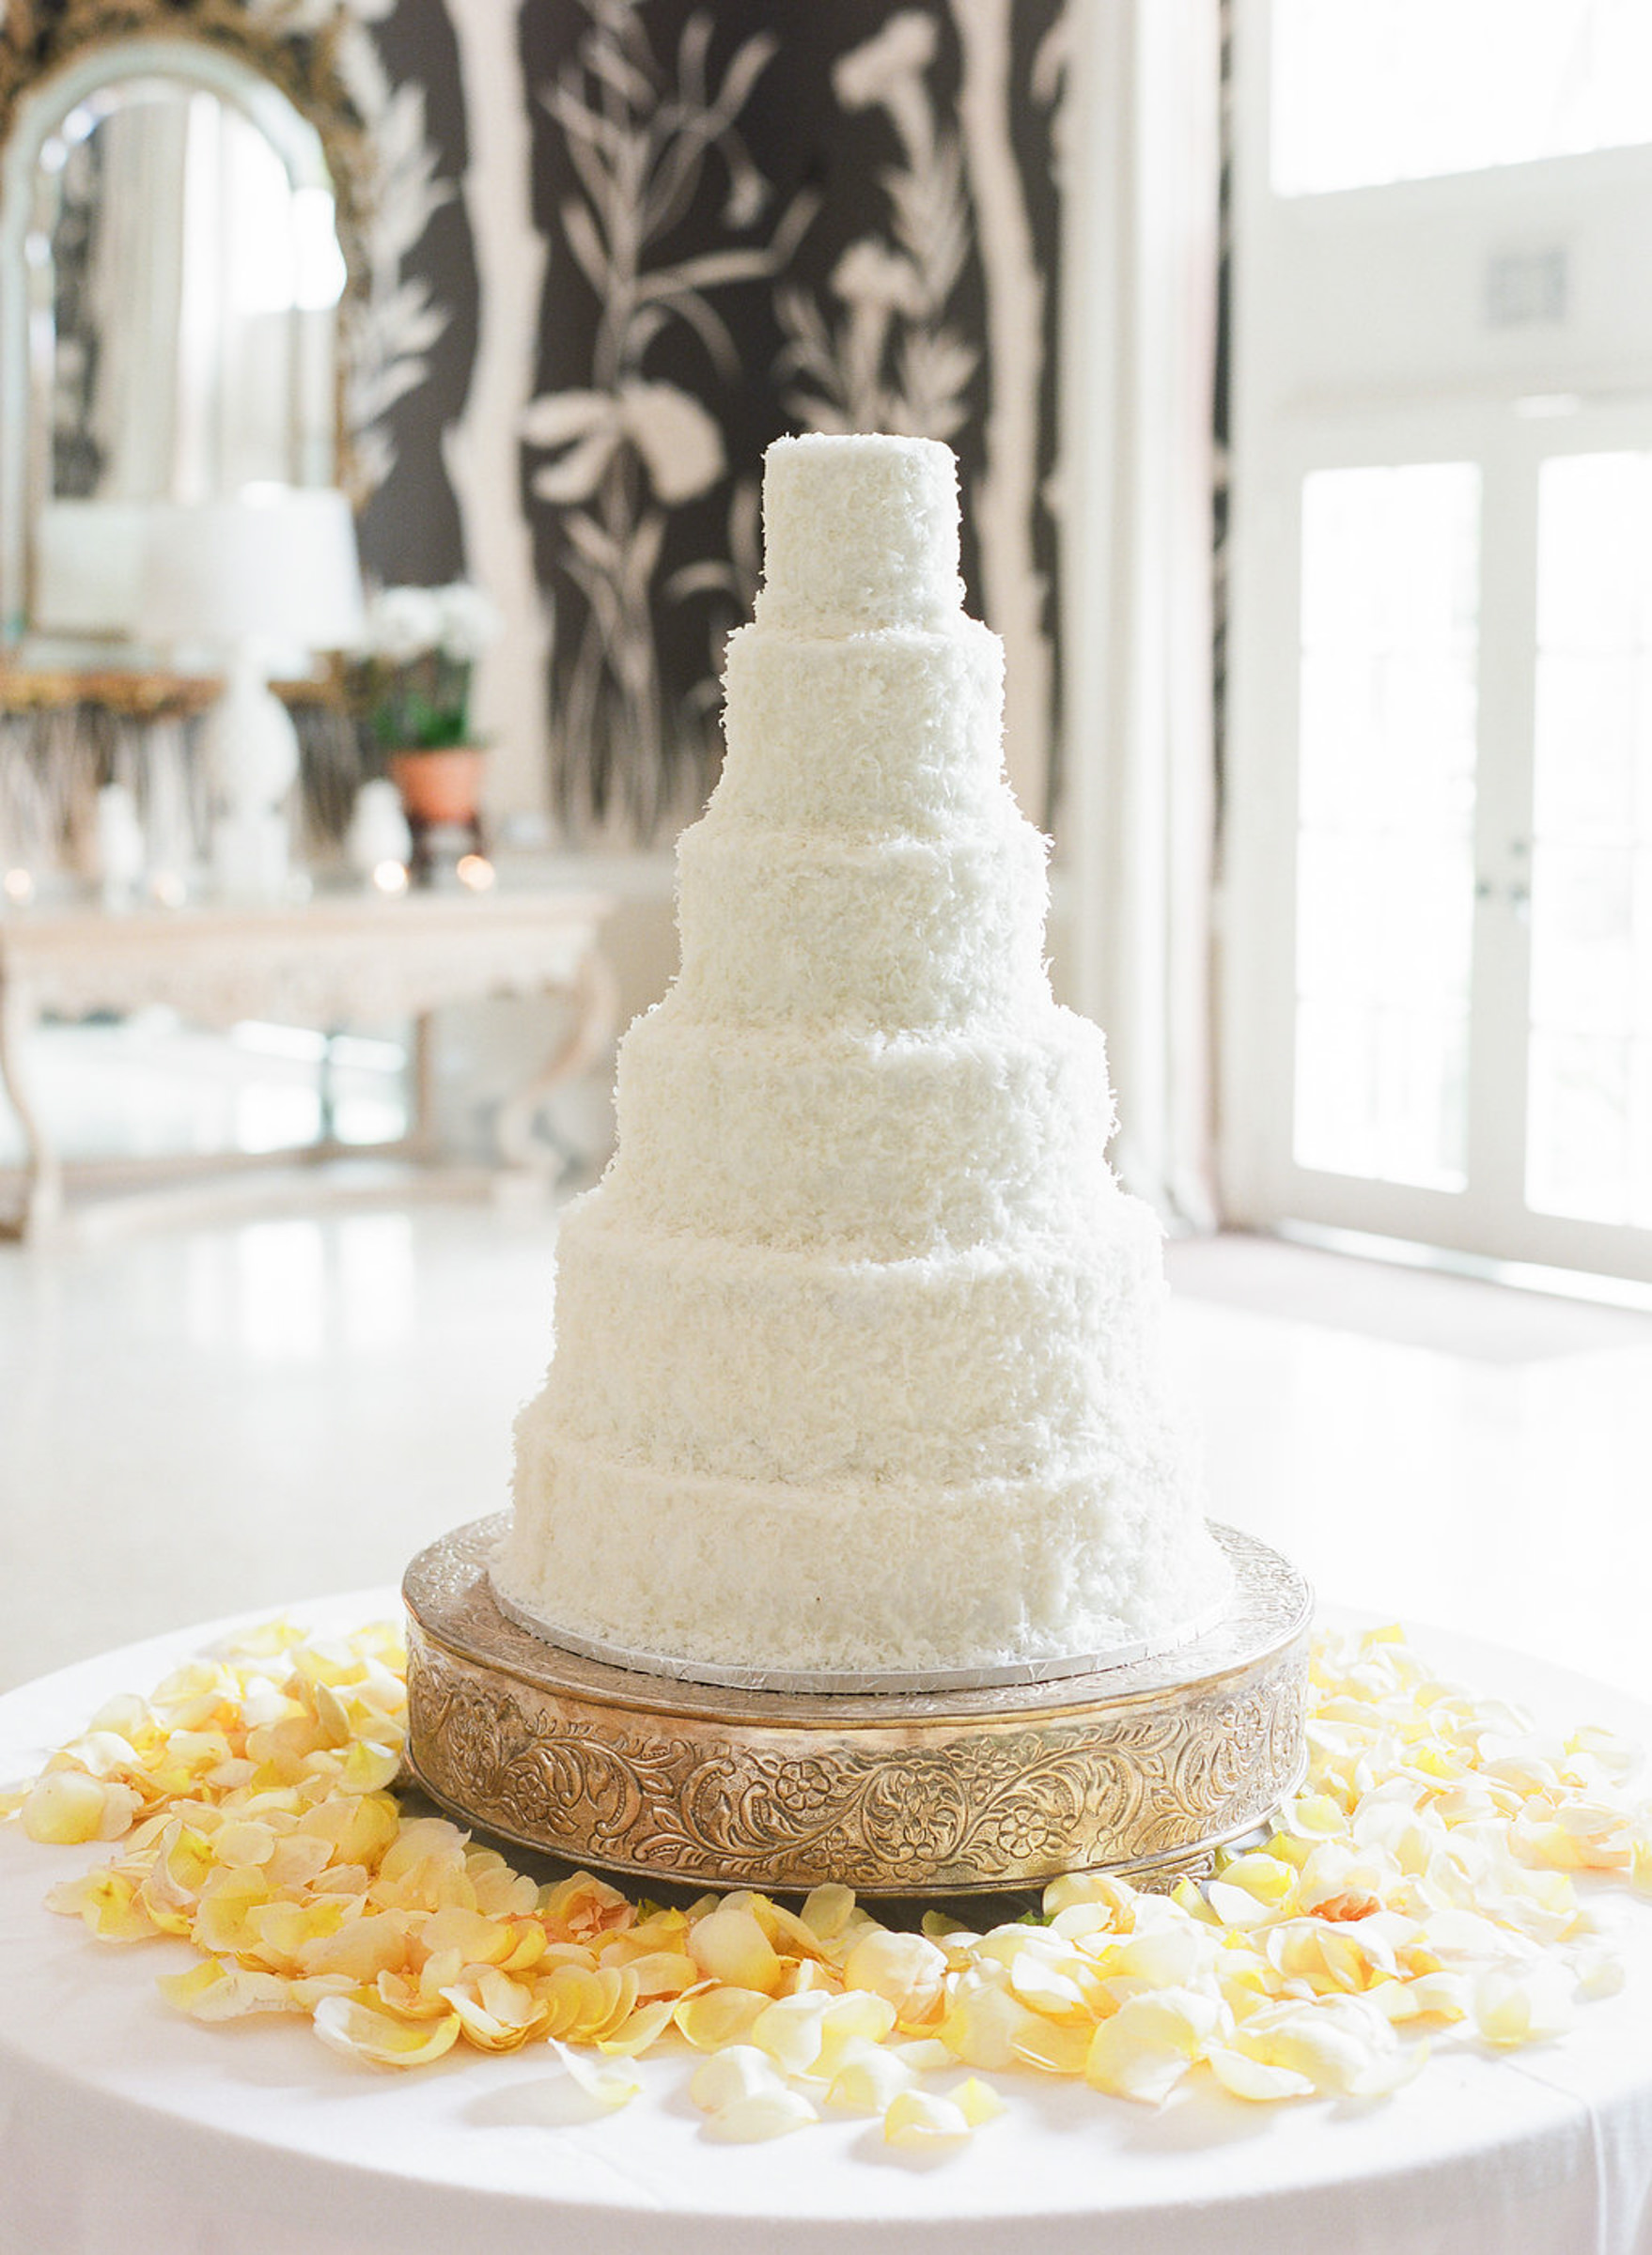 Six tiered cocunut wedding cake - photo by Corbin Gurkin